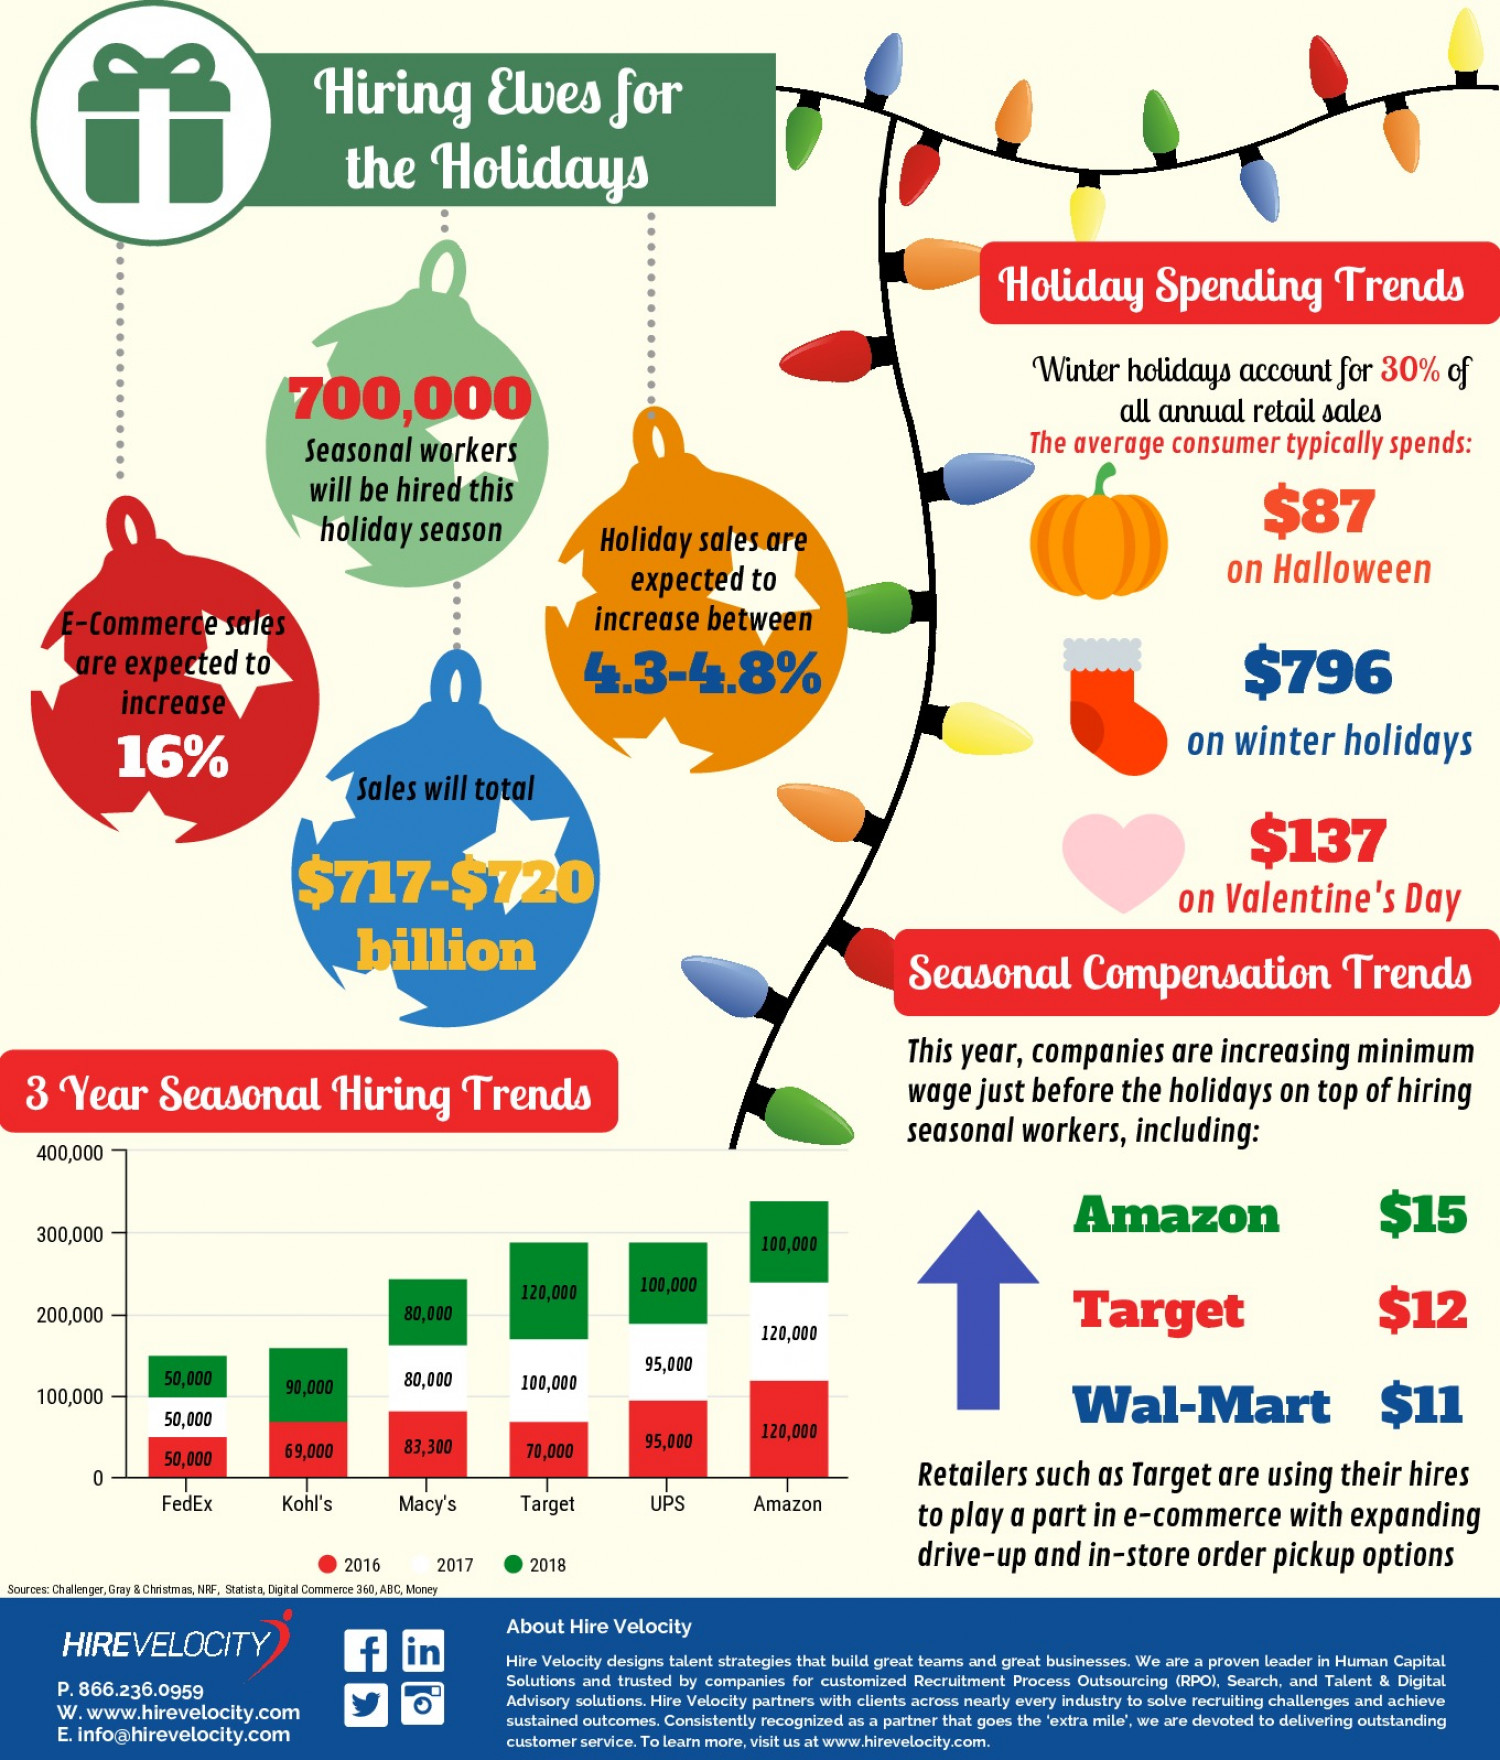 Hiring Elves for the Holidays Infographic